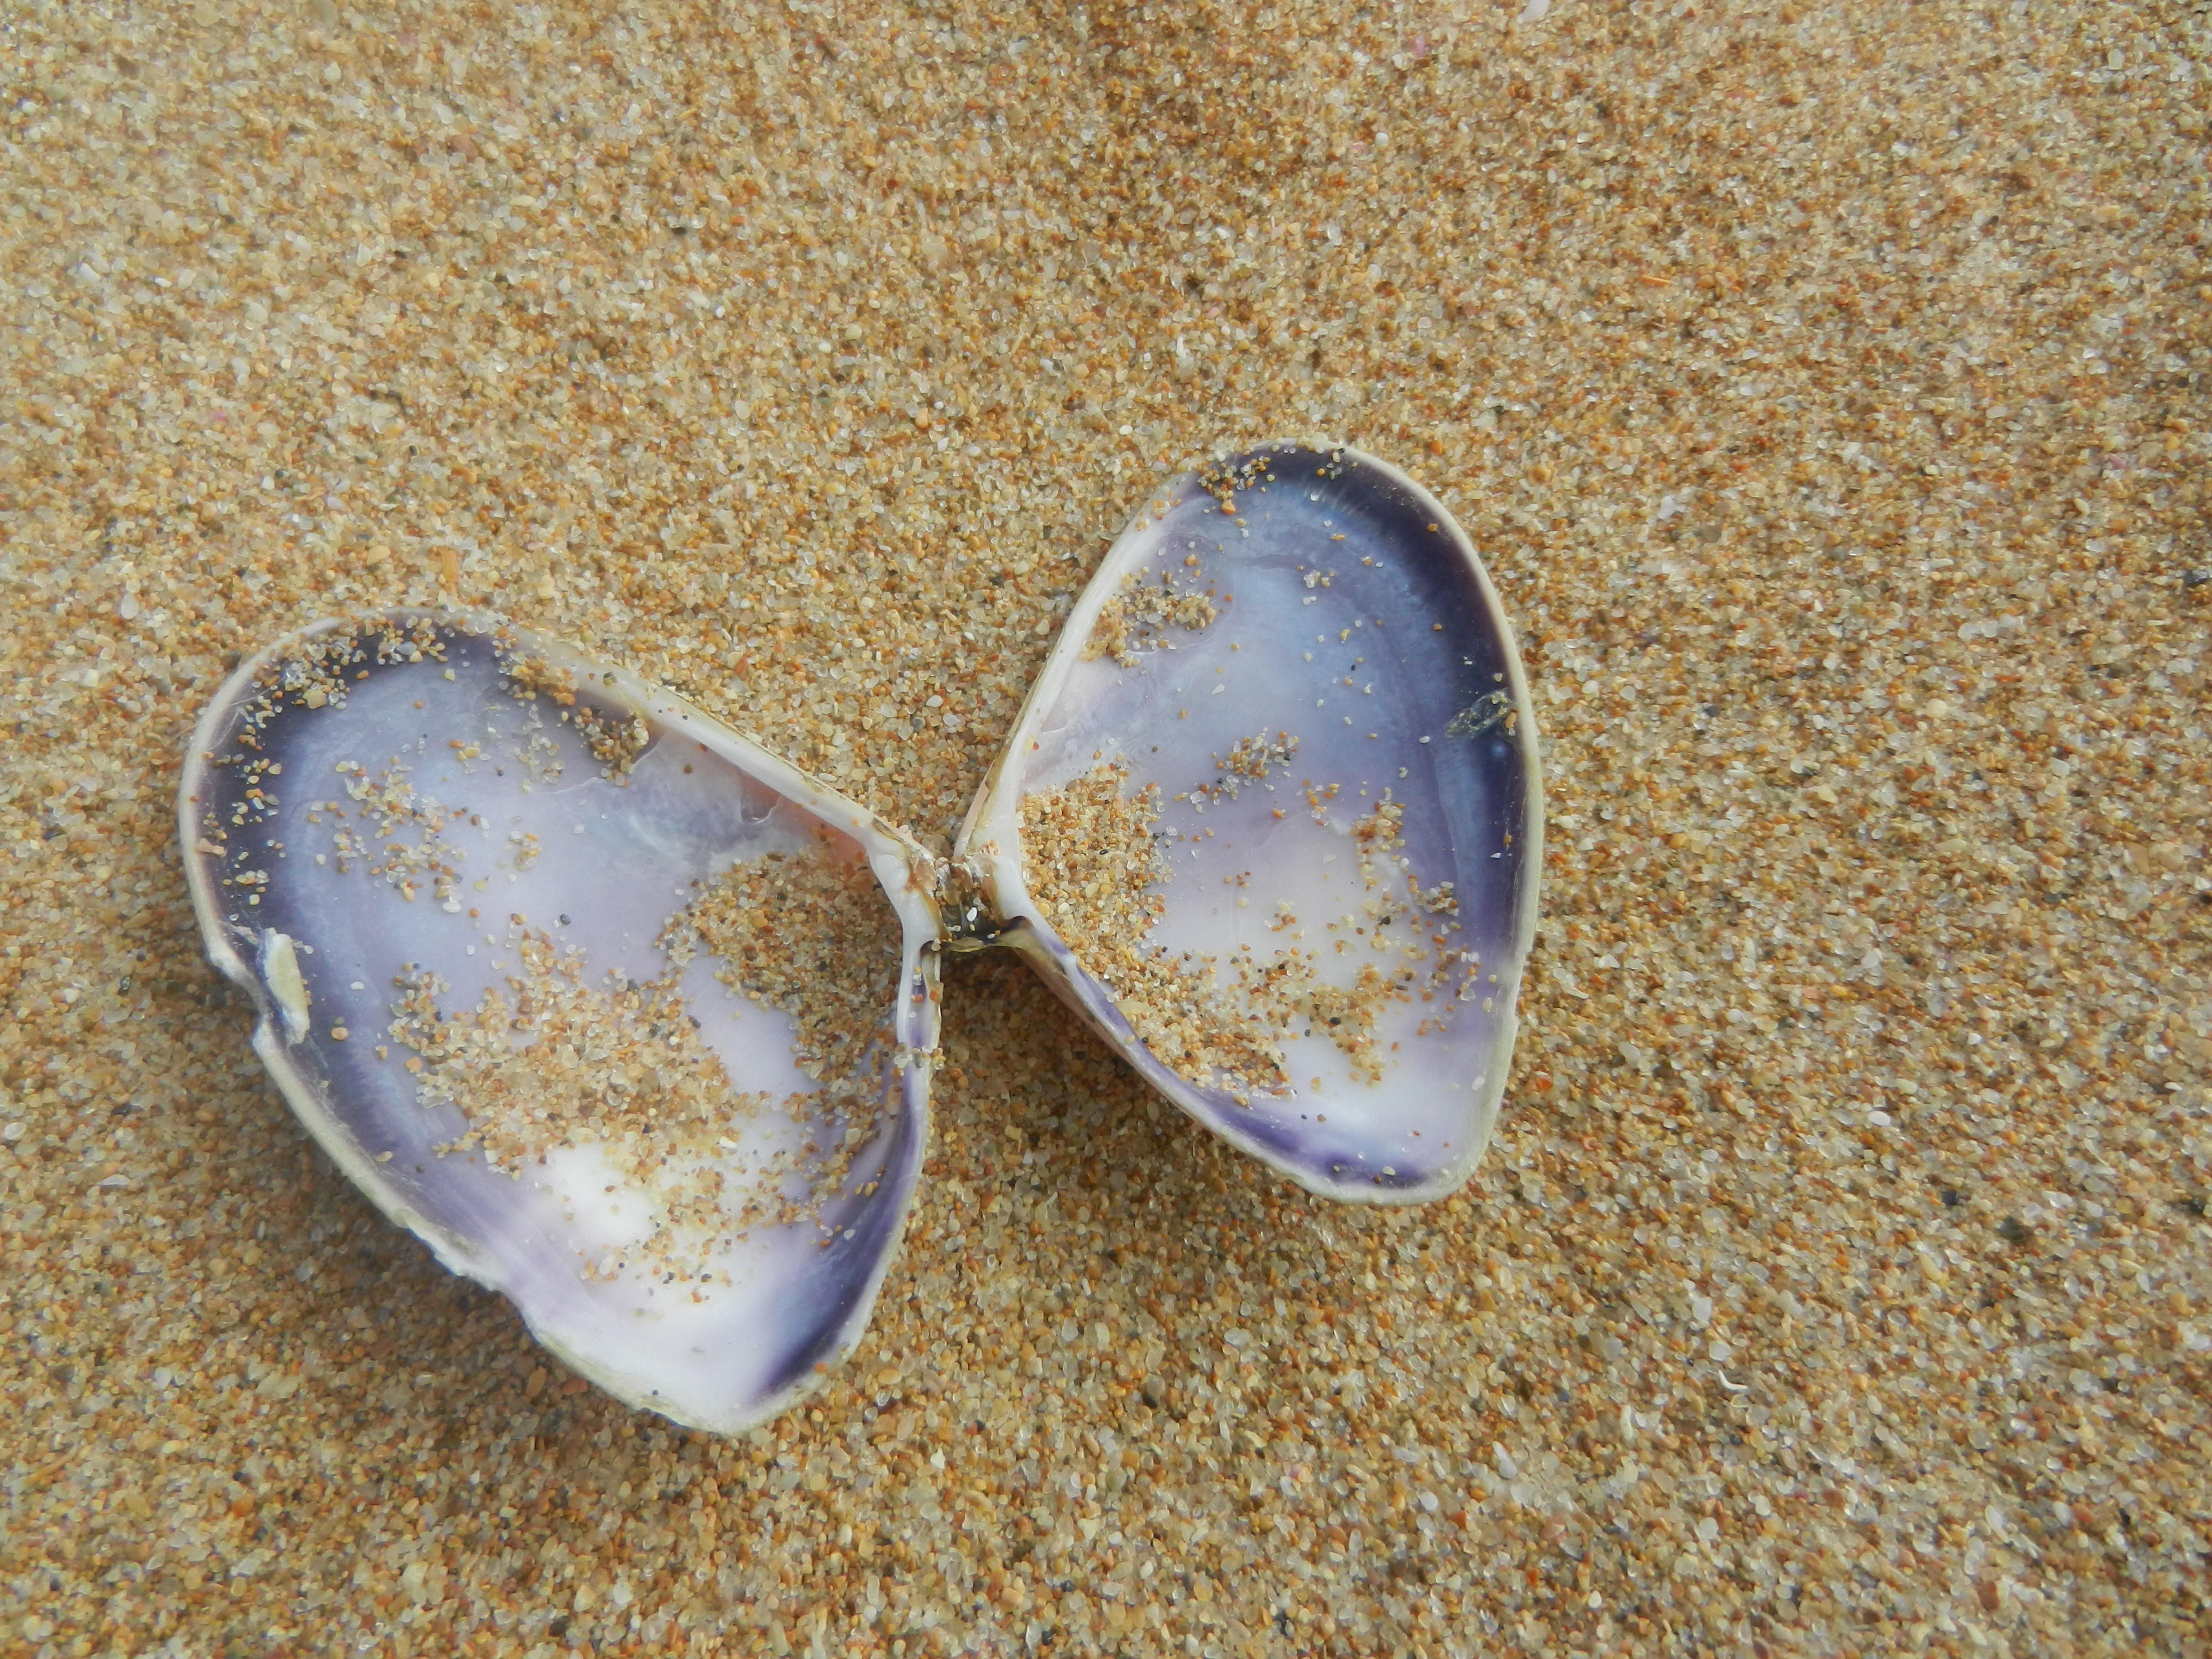 Open purple colored clam shell laying on the beach in the shape of a butterfly.